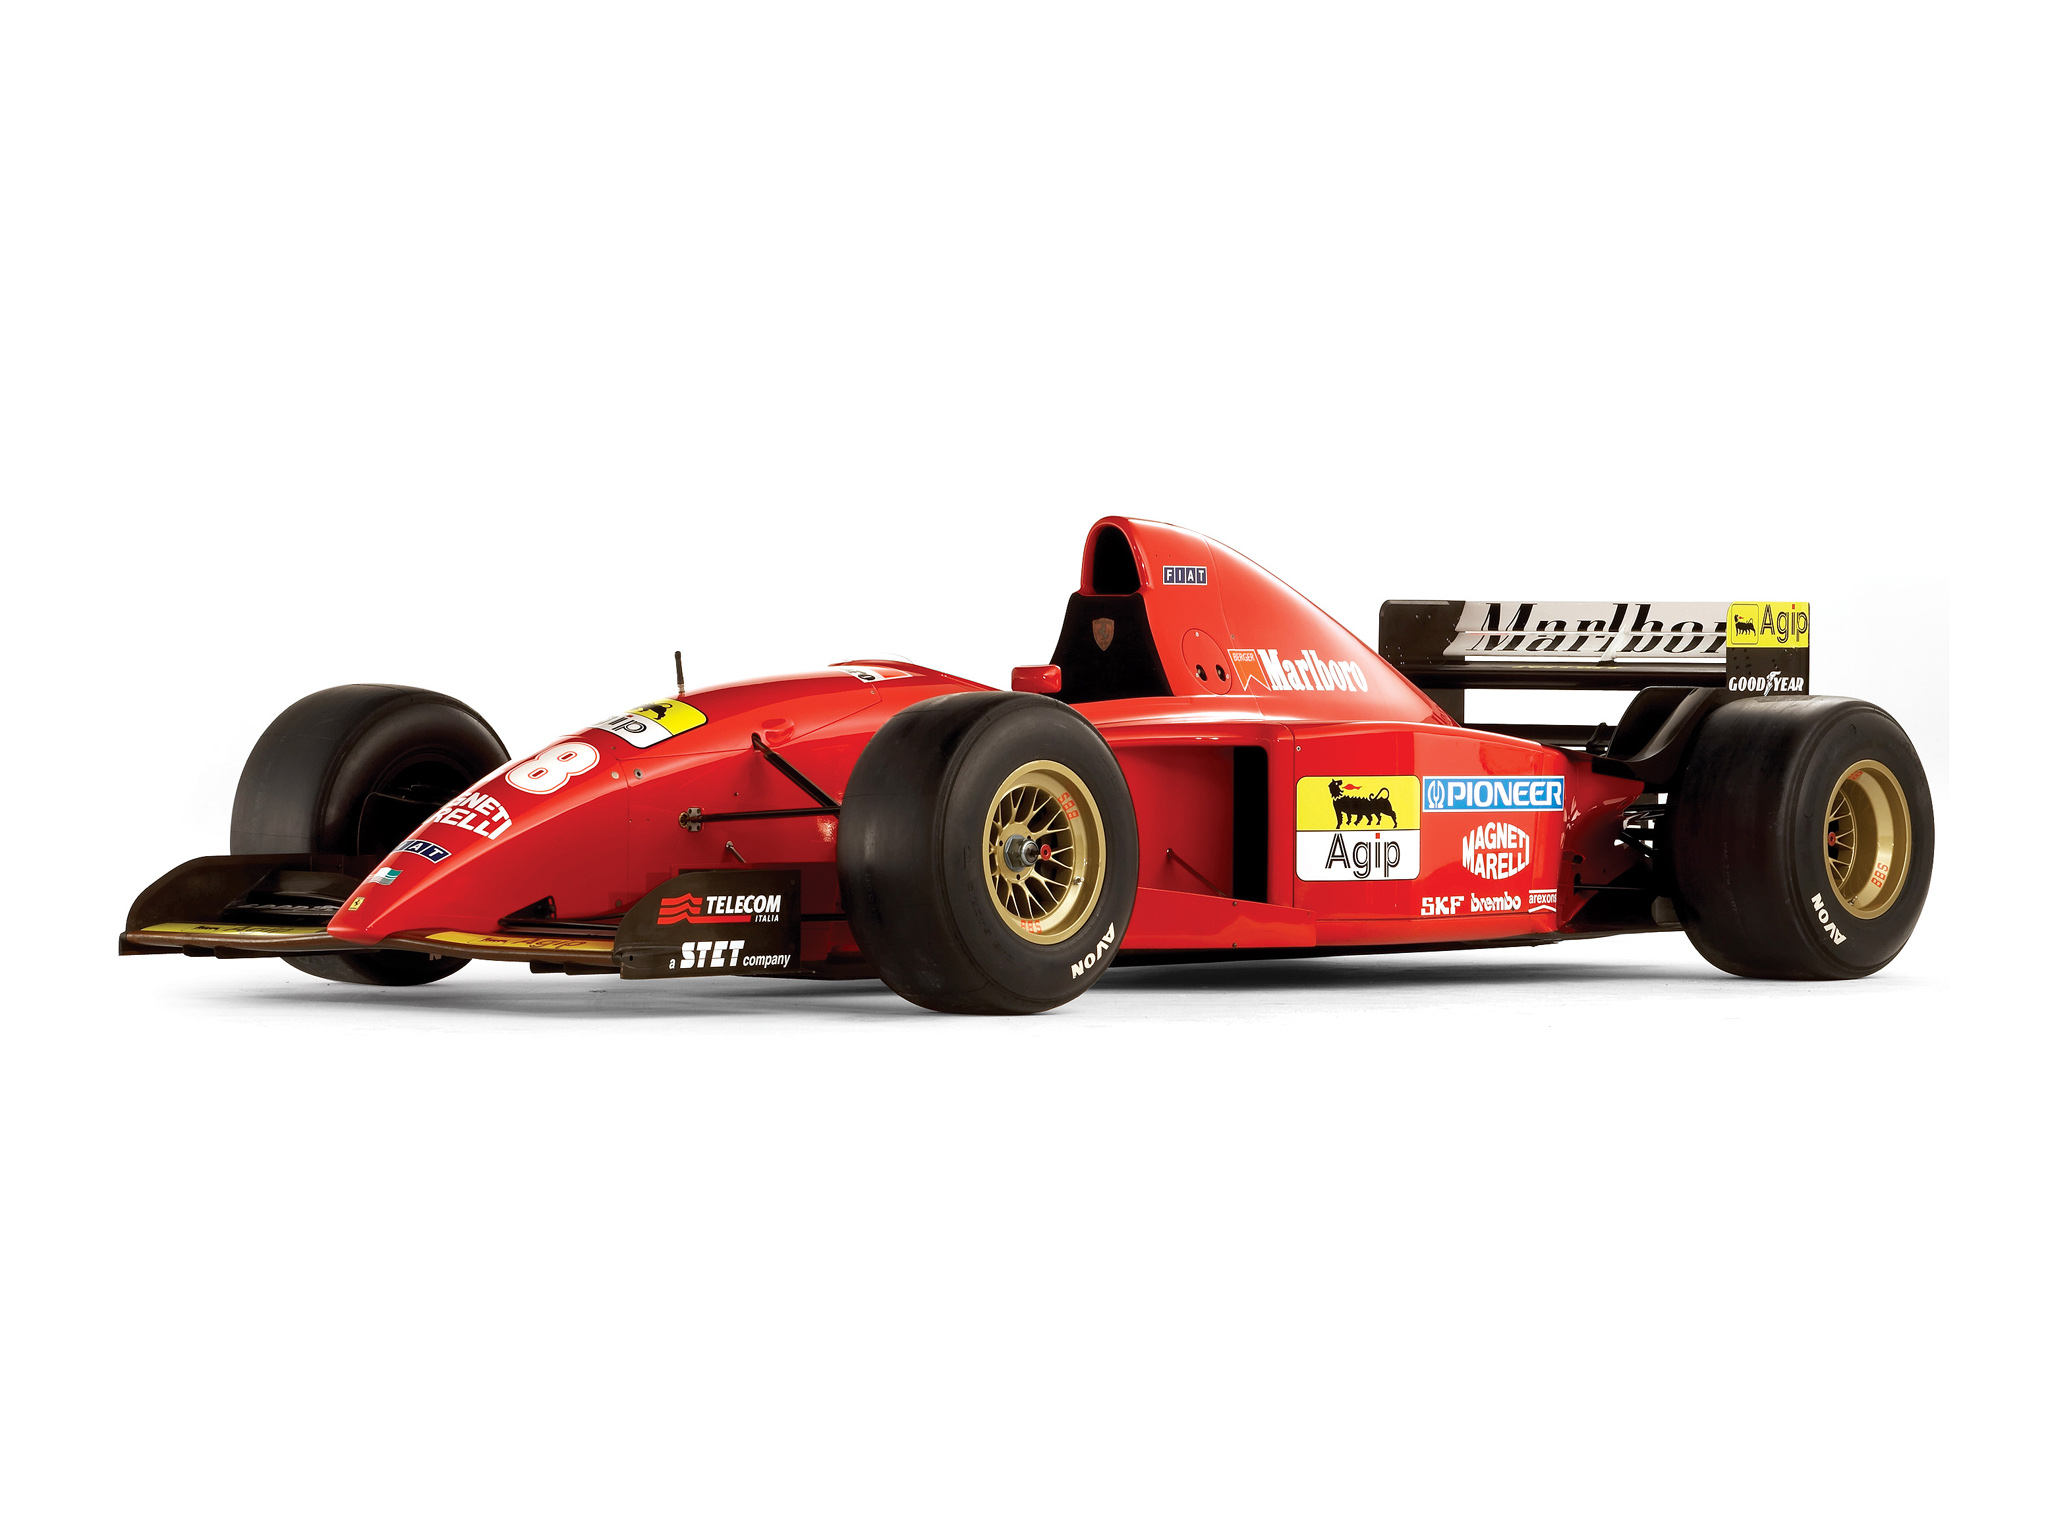 1995 Ferrari 412 T2 Race Racing Formula One F 1 T 2 G